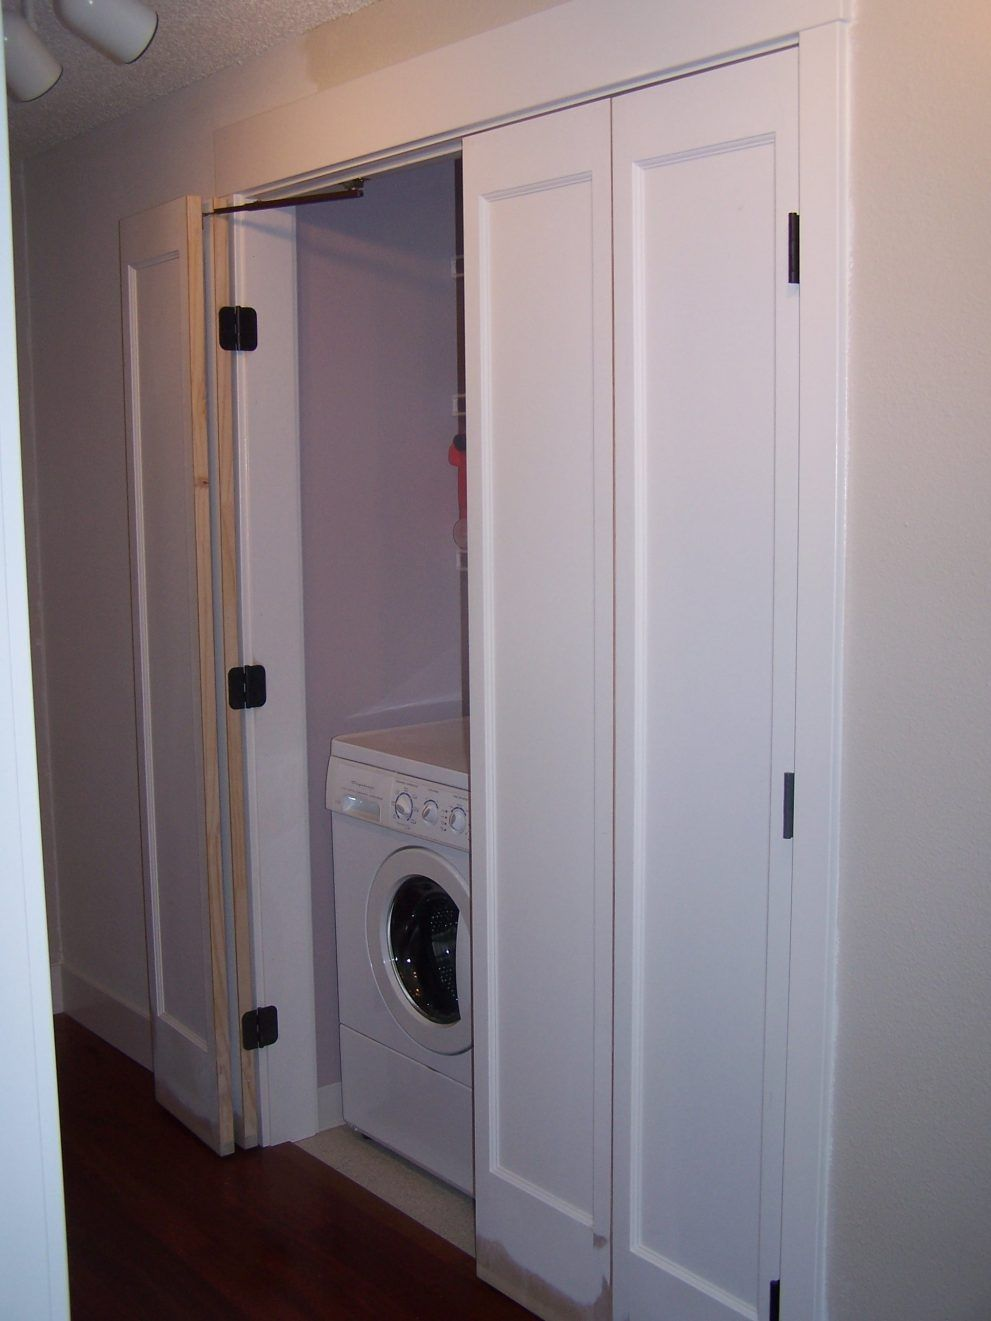 Pin By Sarah Mironchuk On Home Folding Closet Doors Laundry Doors Laundry Room Doors